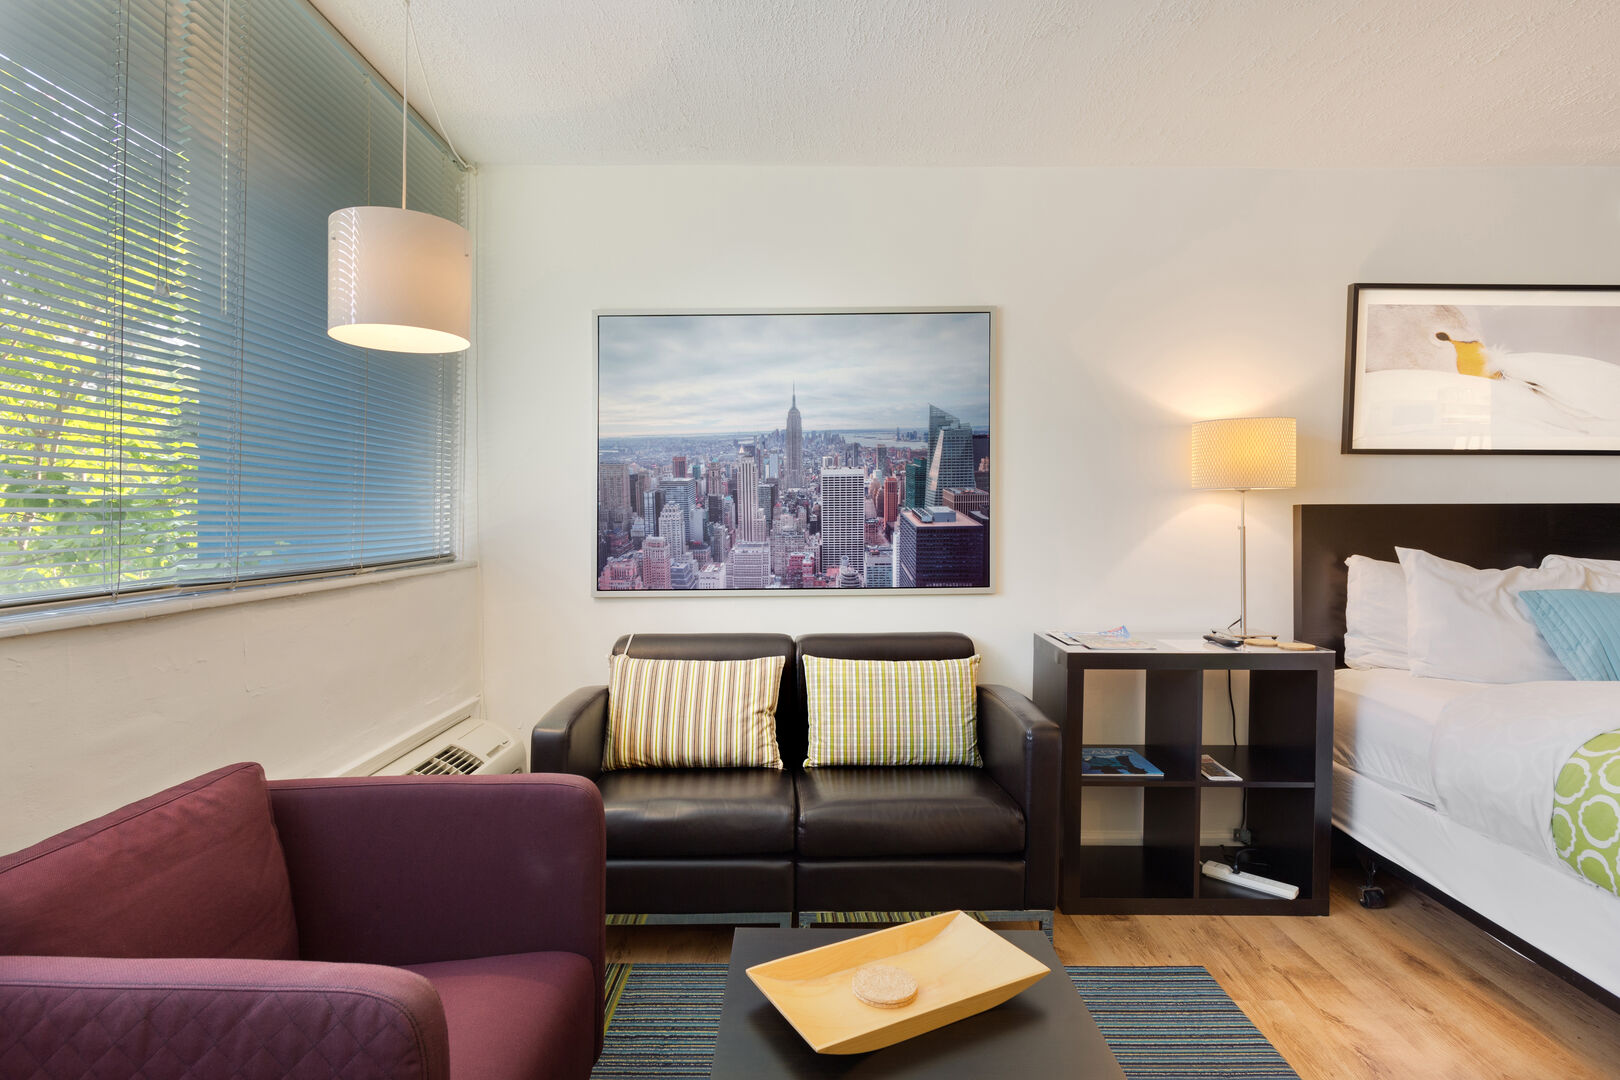 Cozy Sitting Area - Furnished Apartments Midtown Atlanta - Cool Classic Studios On 25th